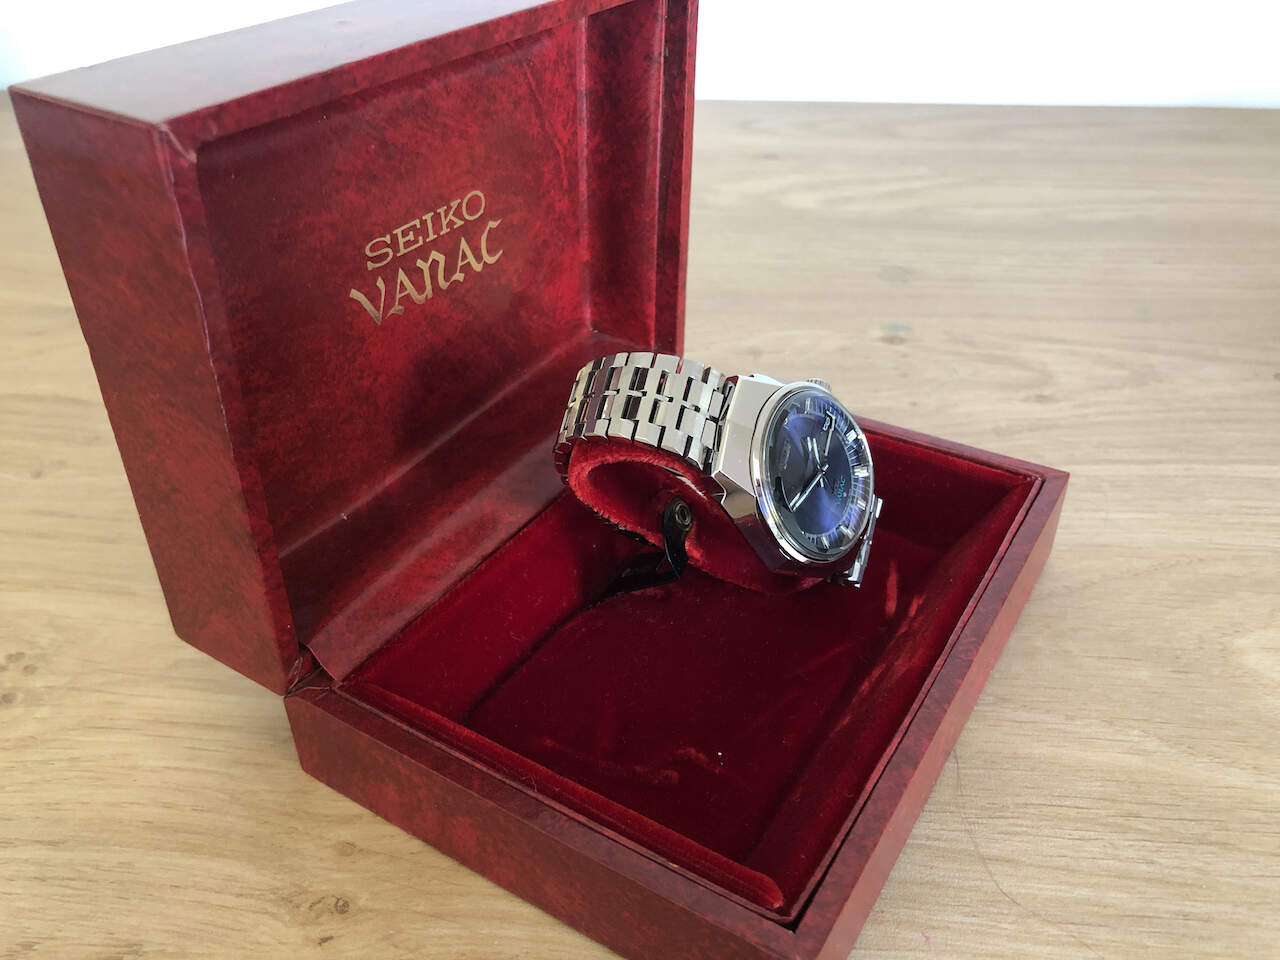 King Seiko Vanac box